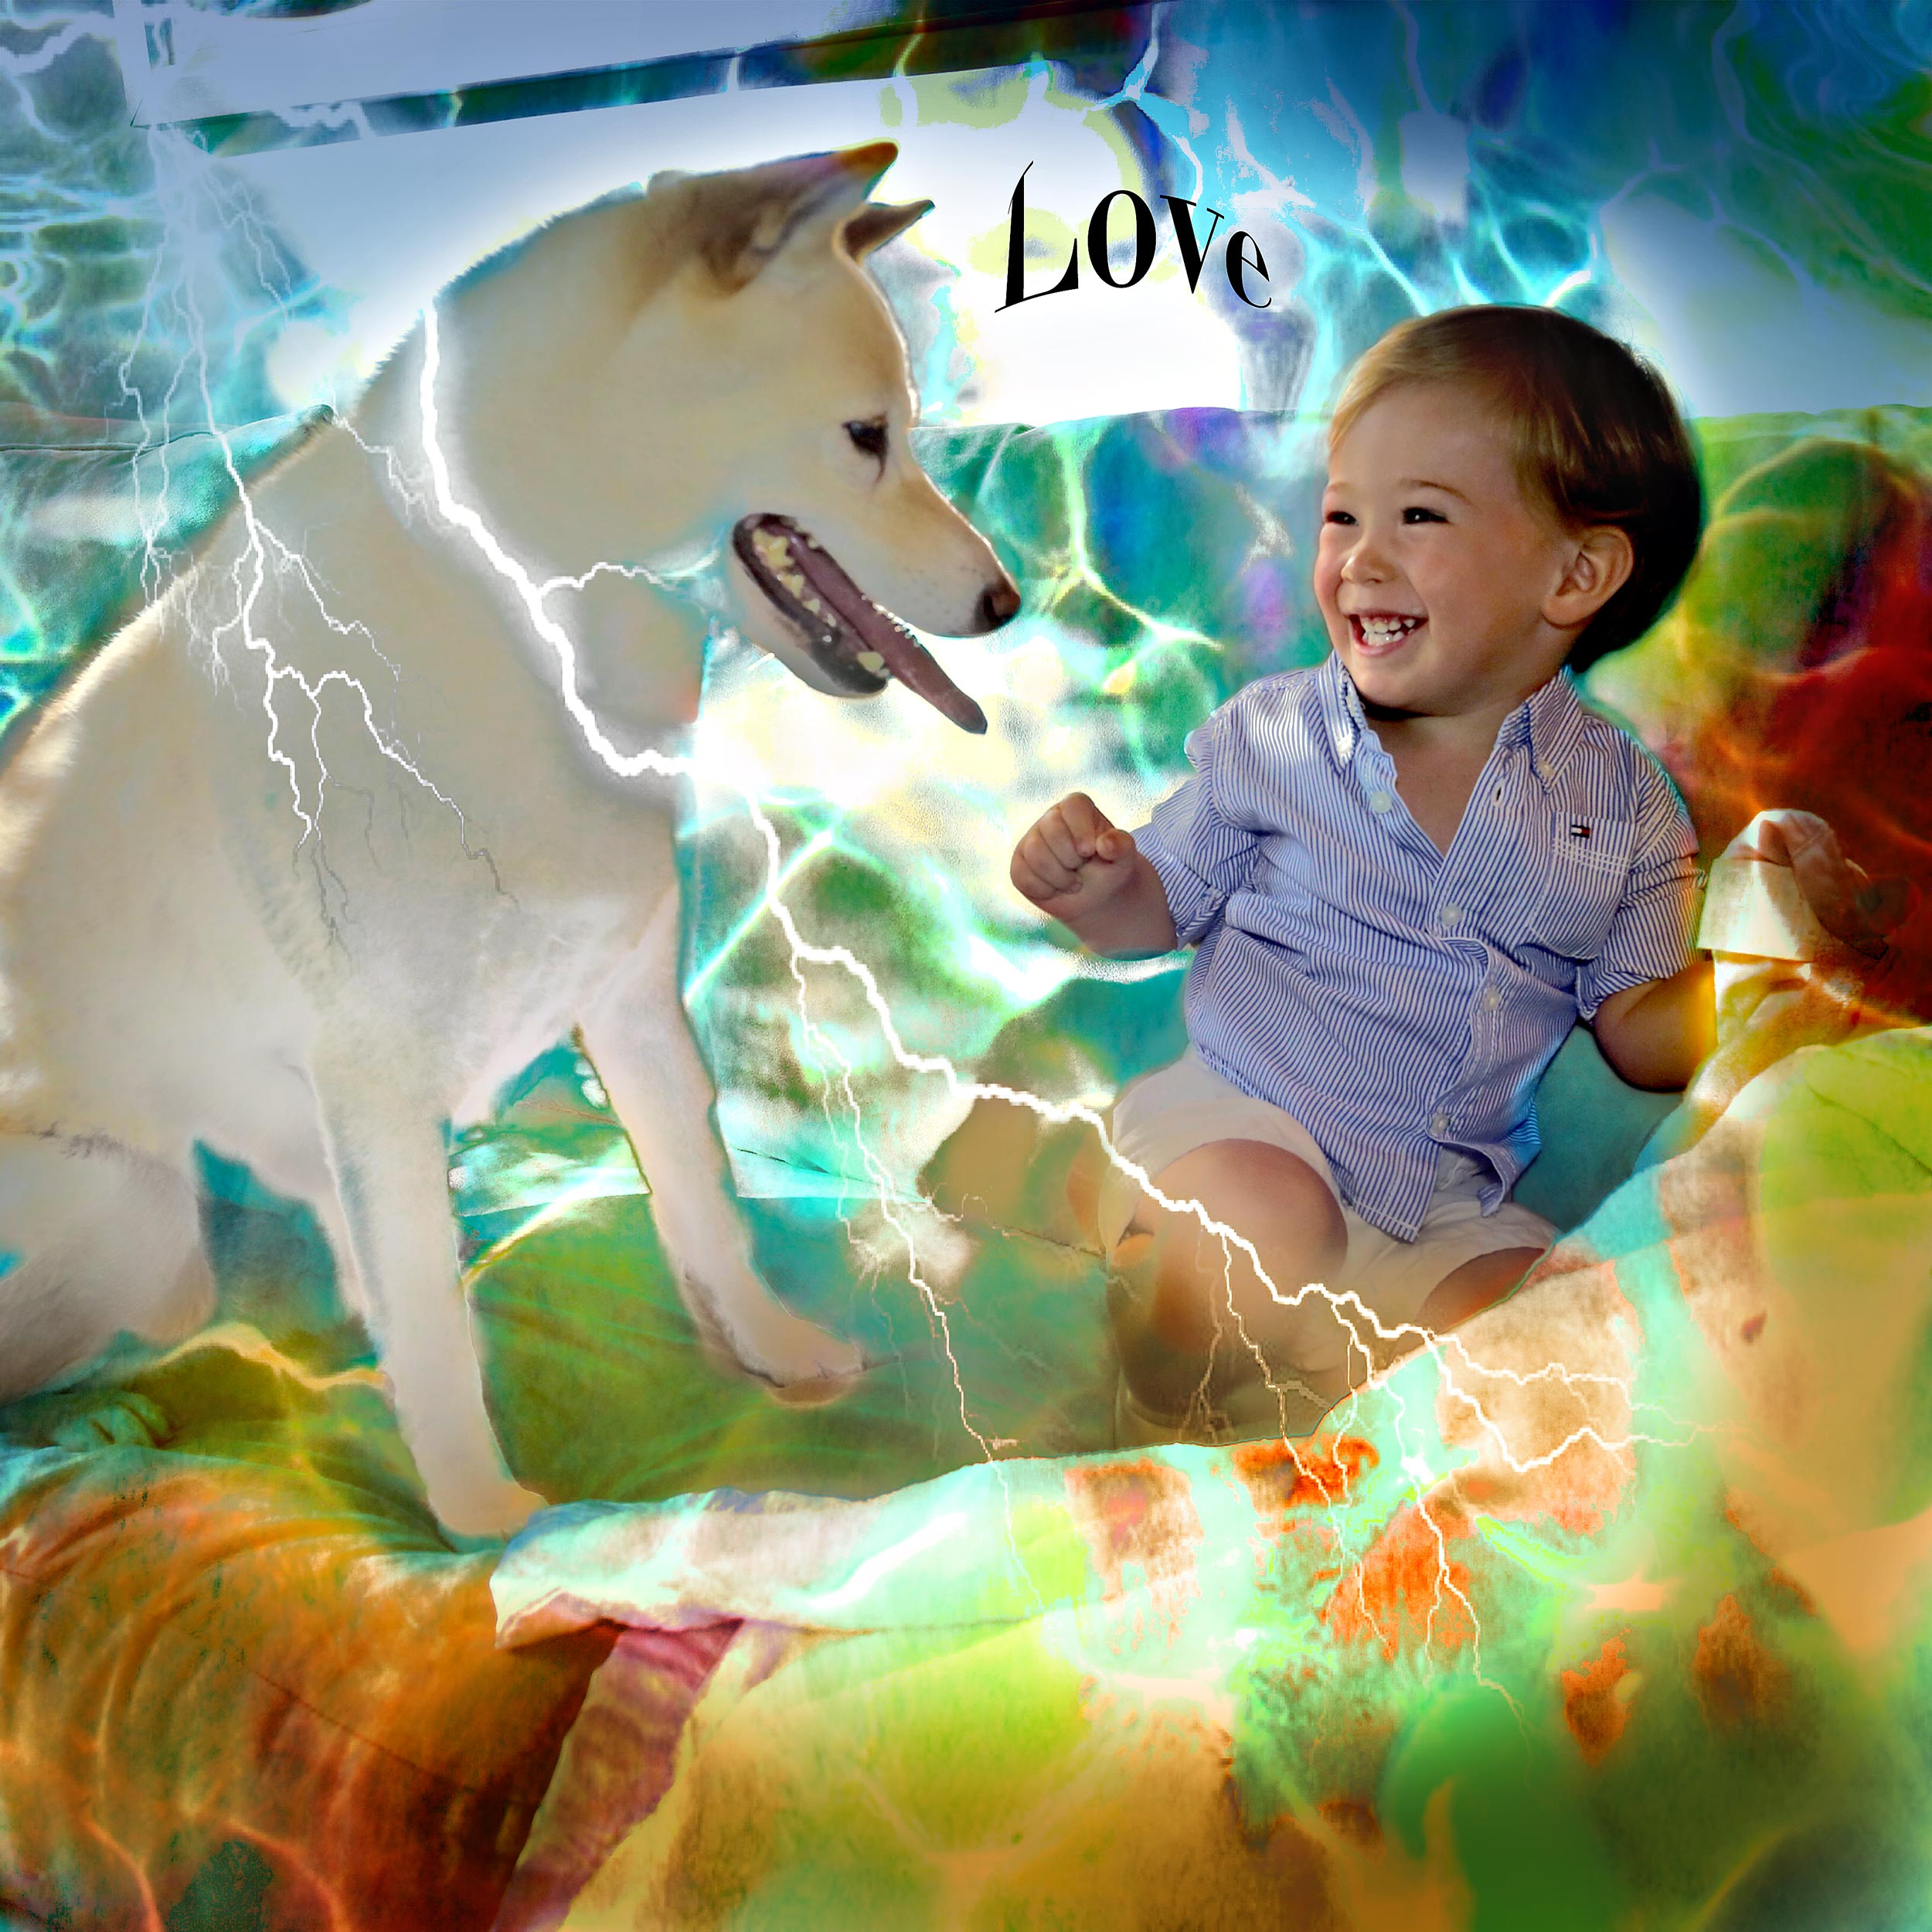 Babies-and-Dogs-Leo-and-Tomo-Love.jpg